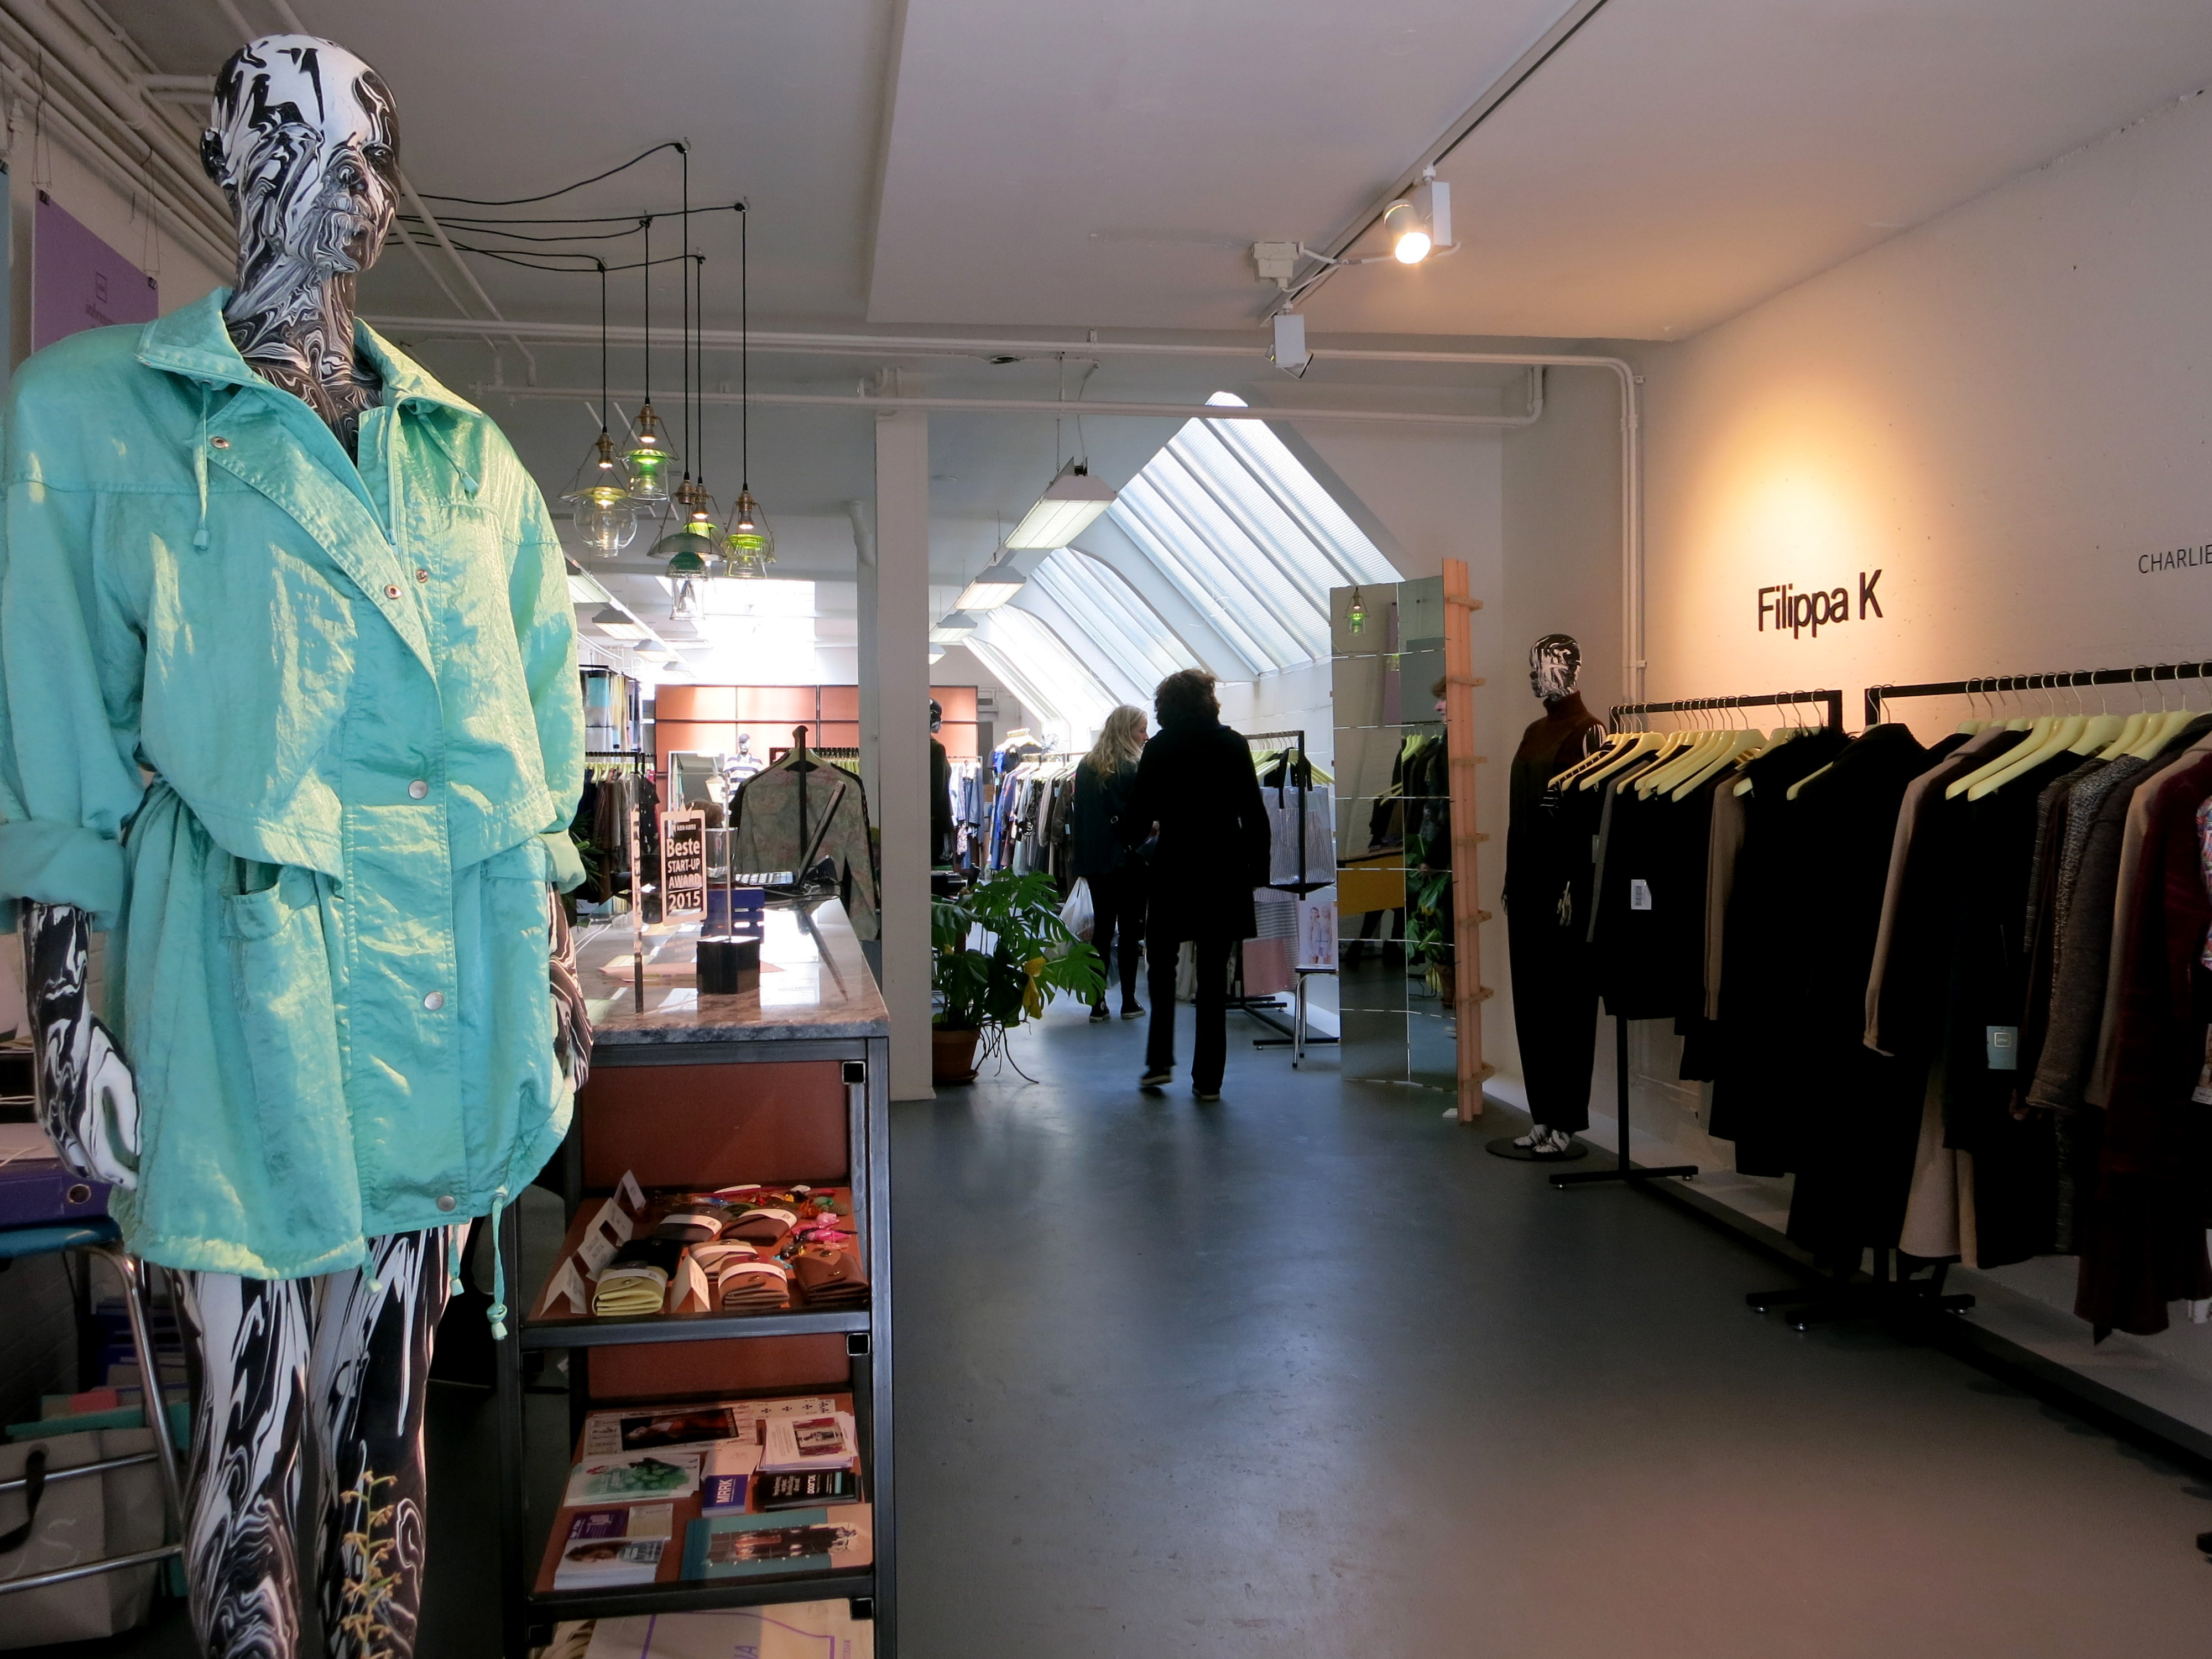 Borrow instead of buying at LENA, the fashion library. Reduce clutter in your house while still enjoying the excitement of a new sweater or shirt.